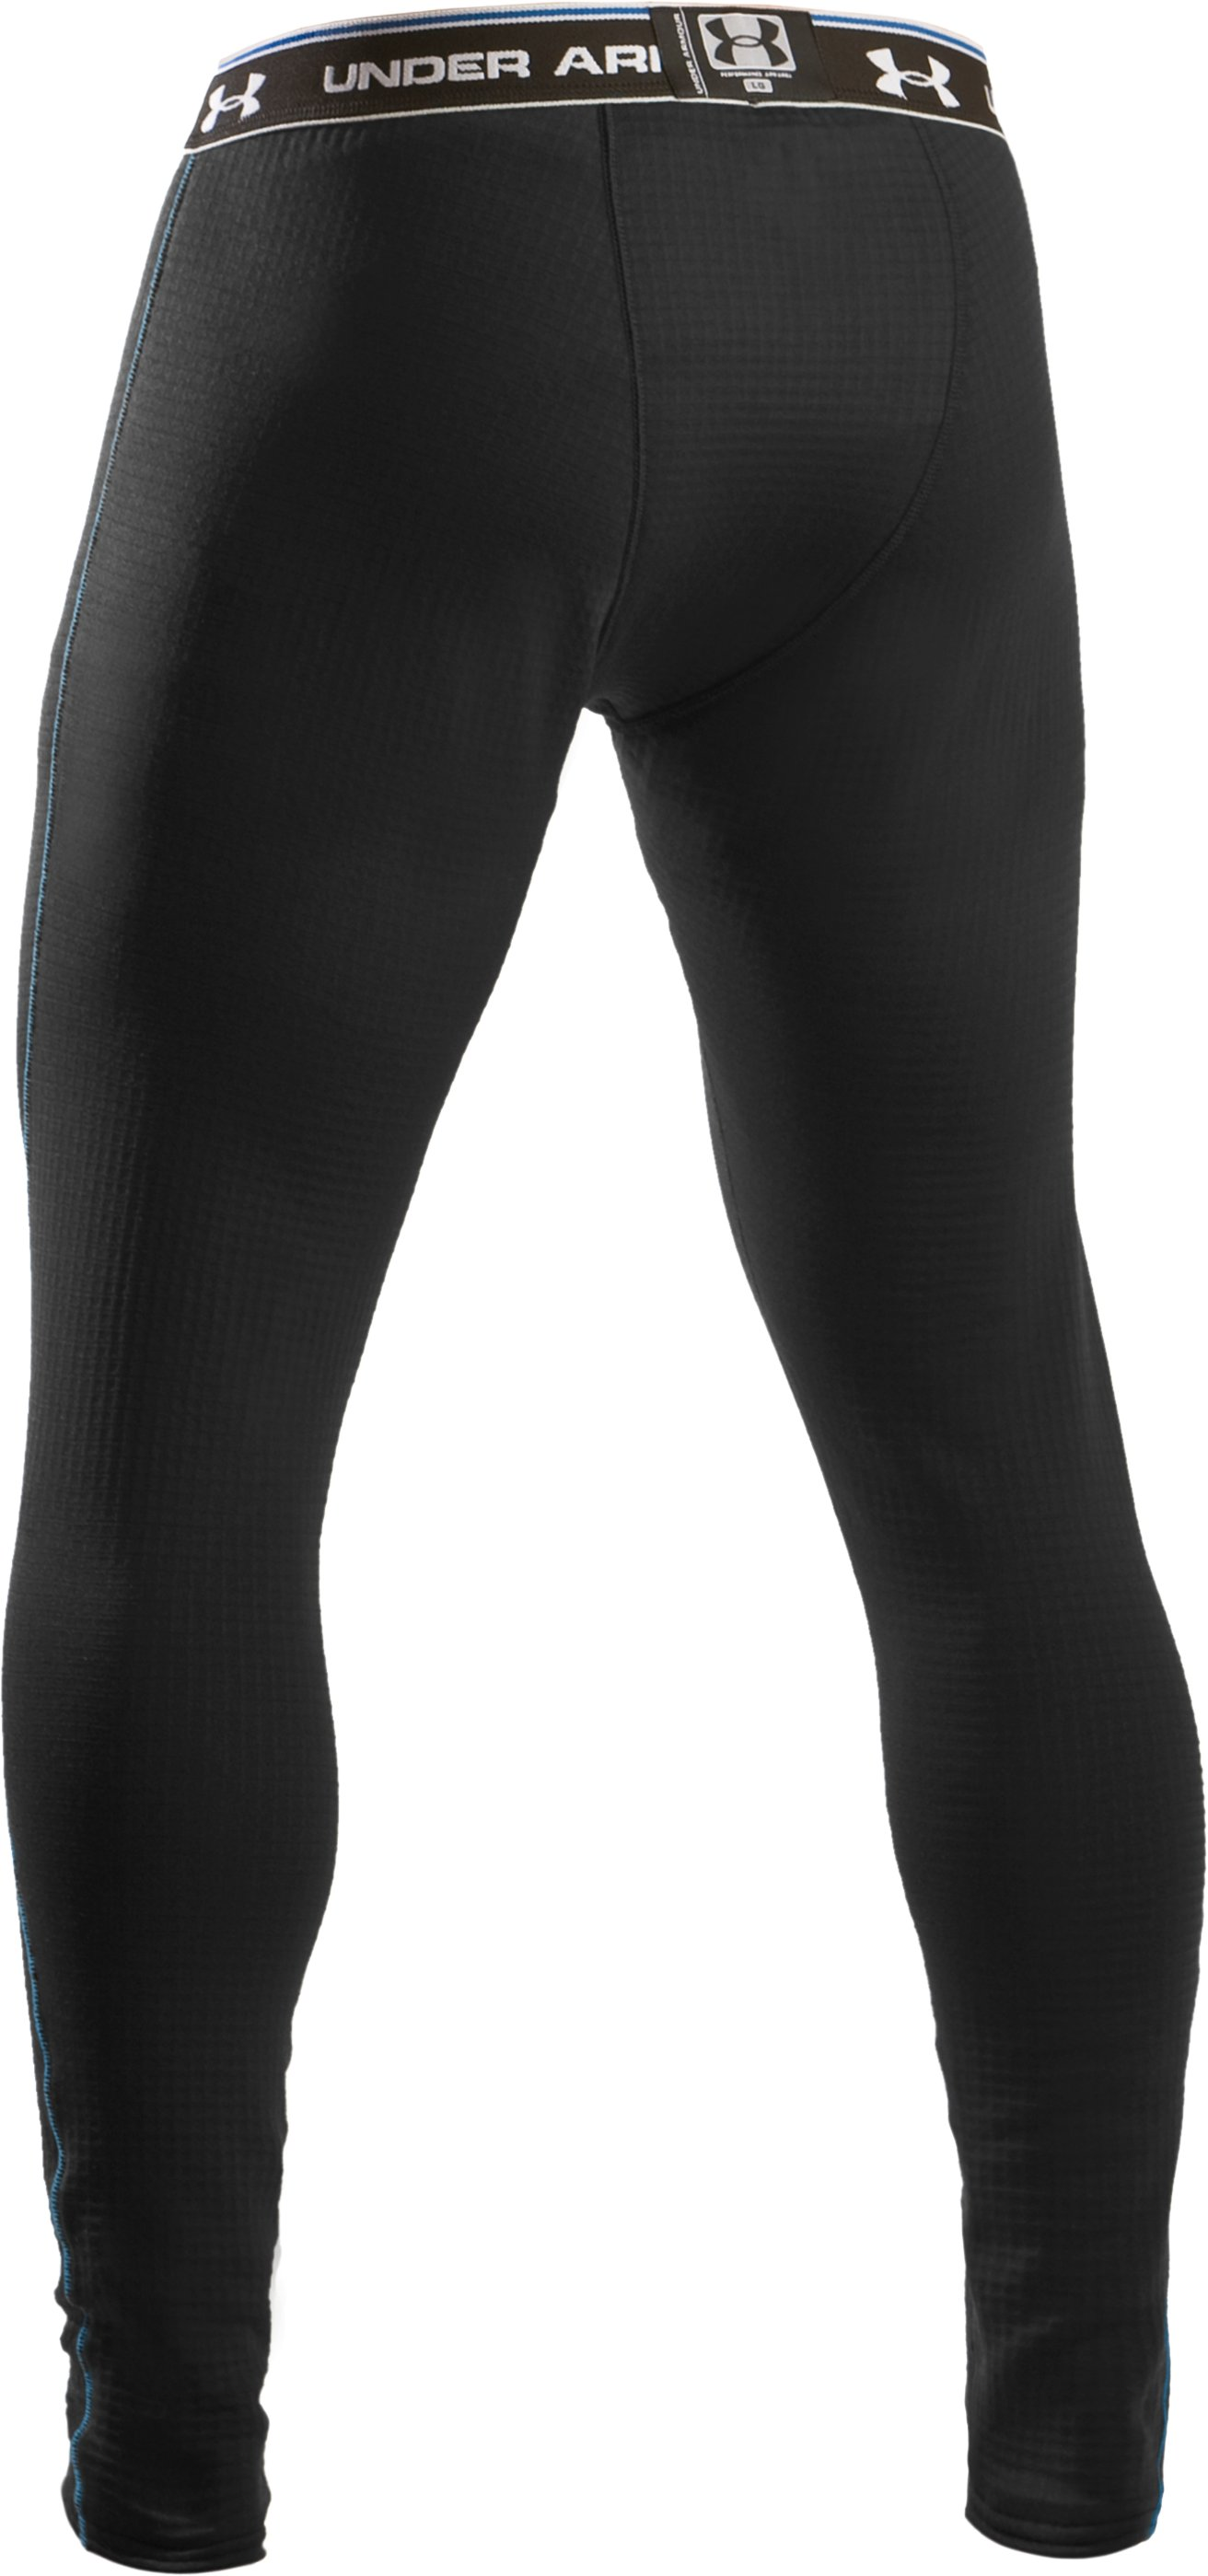 Men's ColdGear® UA Base™ 3.0 Leggings, Black ,